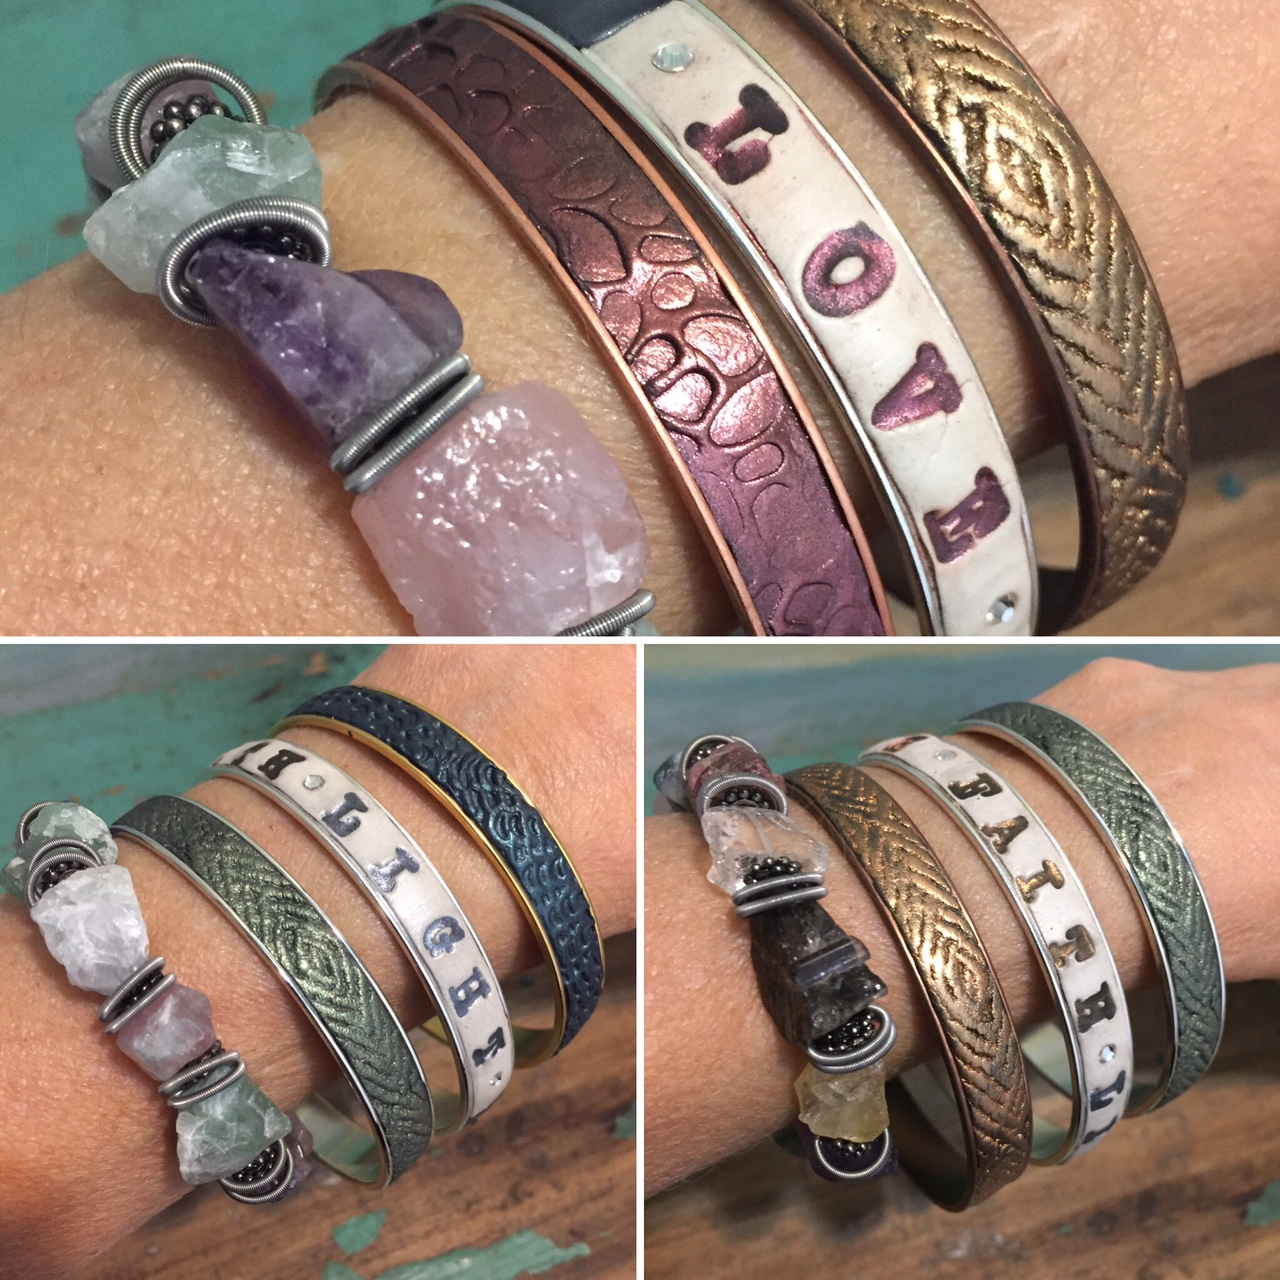 Clay on silver bangles are paired with mine-rough gemstones for their healing qualities.